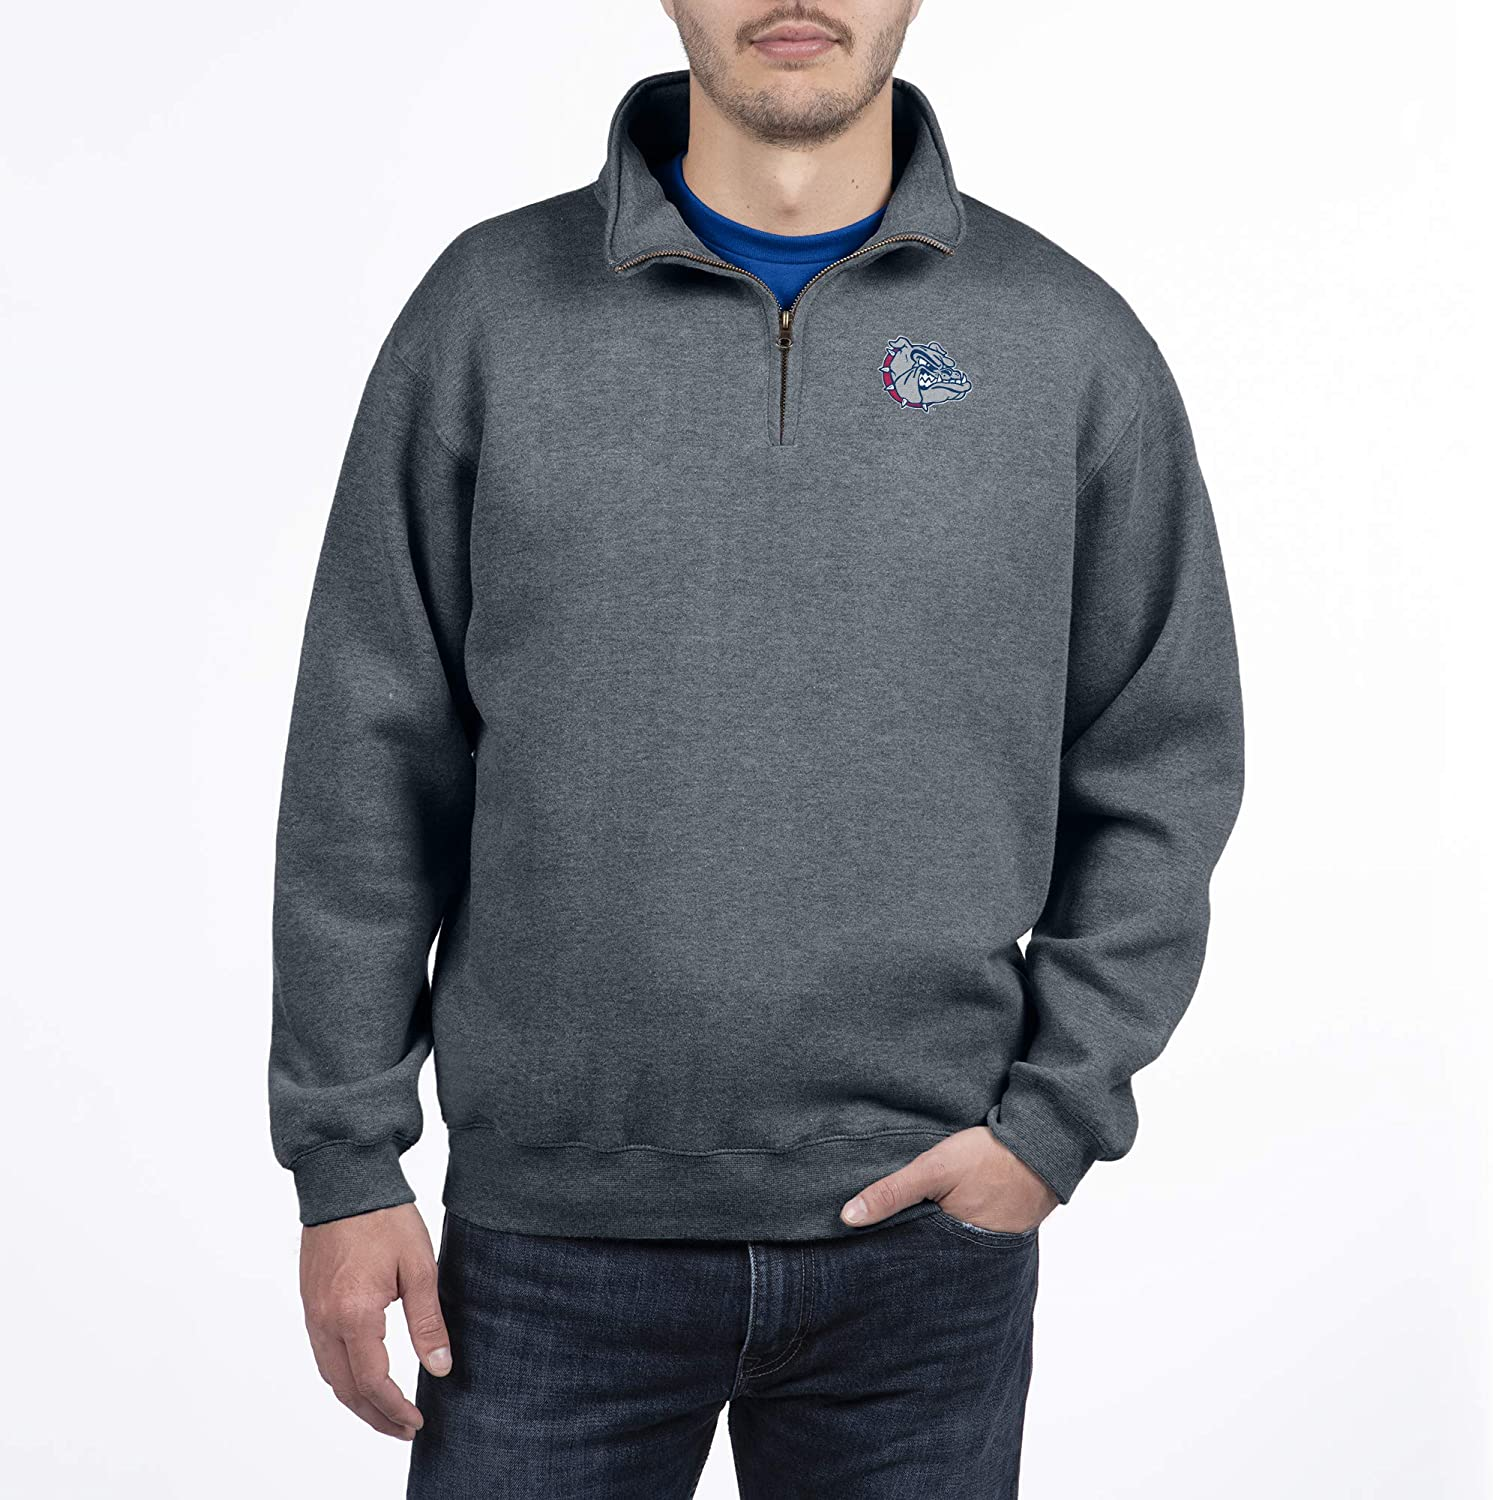 Top of the World Mens Dark Heather Classic Quarter Zip Pullover